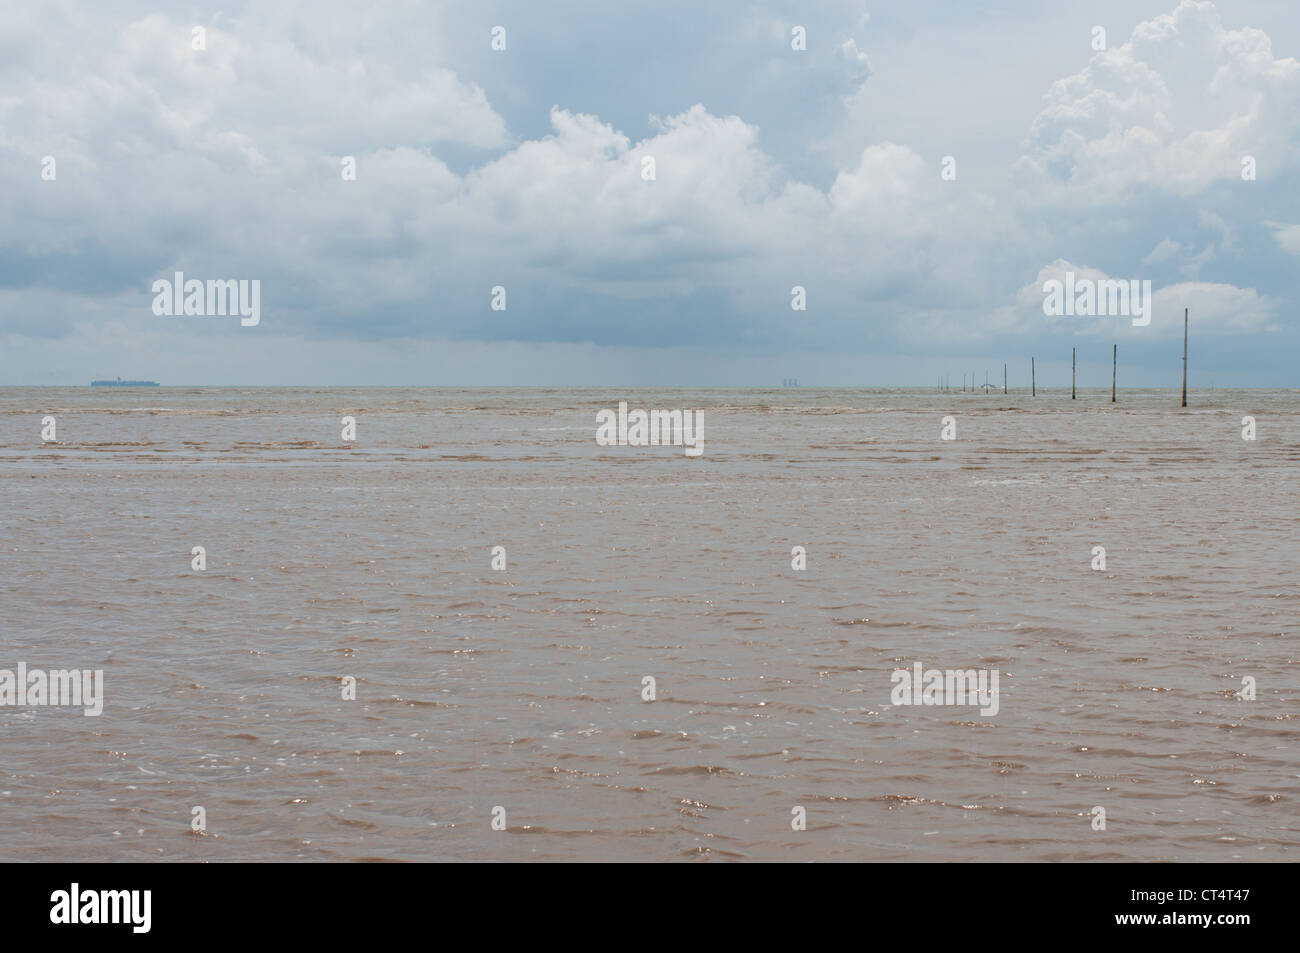 Open muddy sea with blue sky - Stock Image